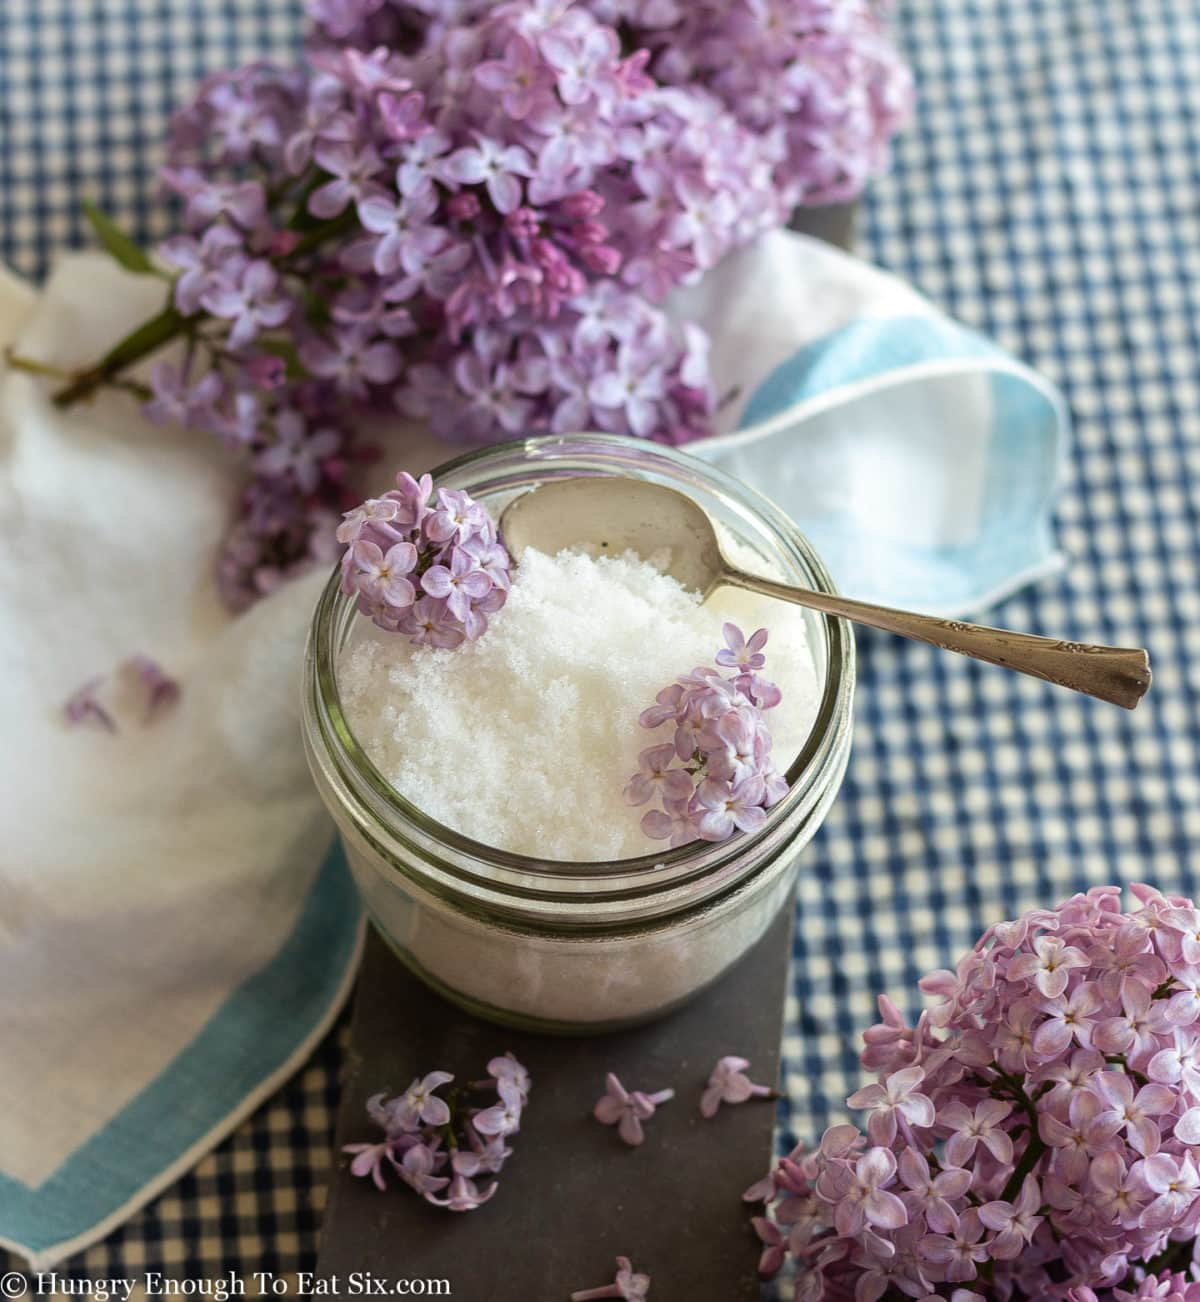 Blue and white linen around a glass bowl of white sugar, and purple lilacs scattered around.